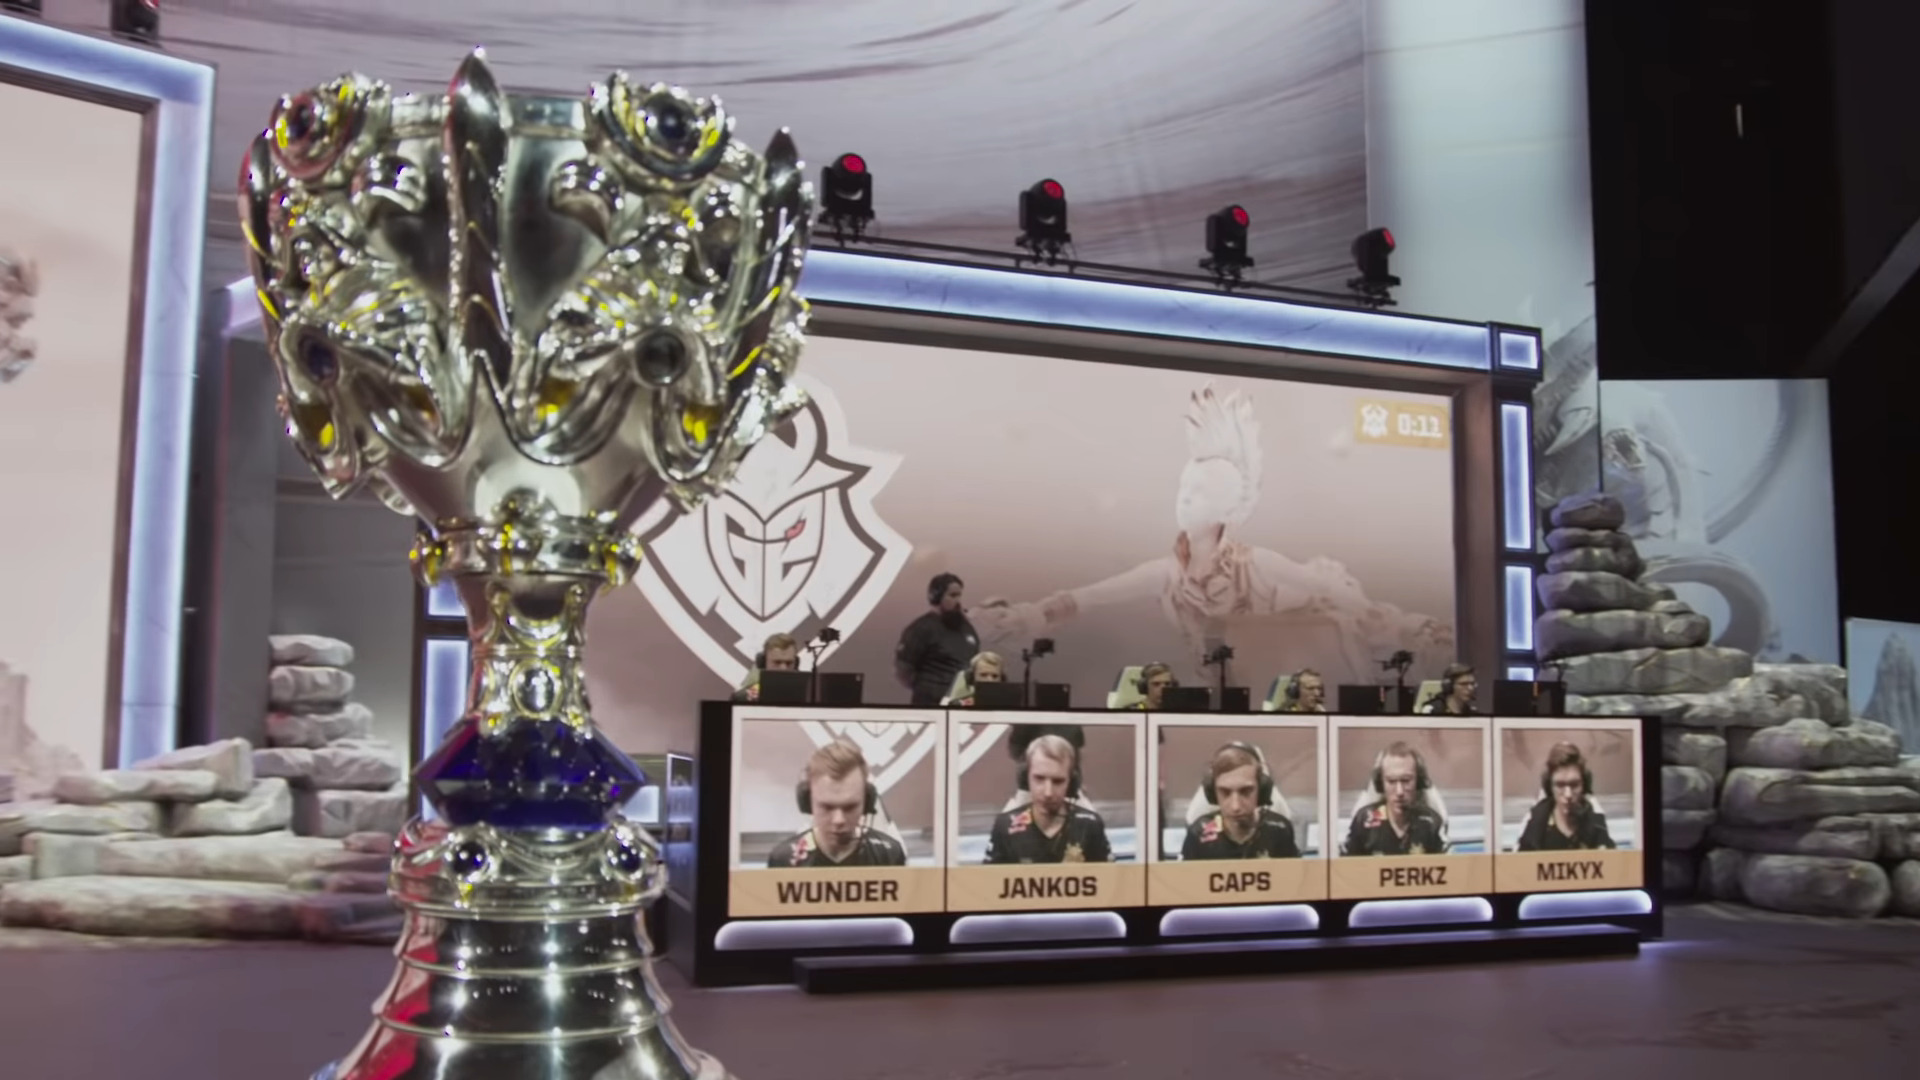 Leona Alongside Ezreal Were The Most Picked Champions During This Year's World Championship